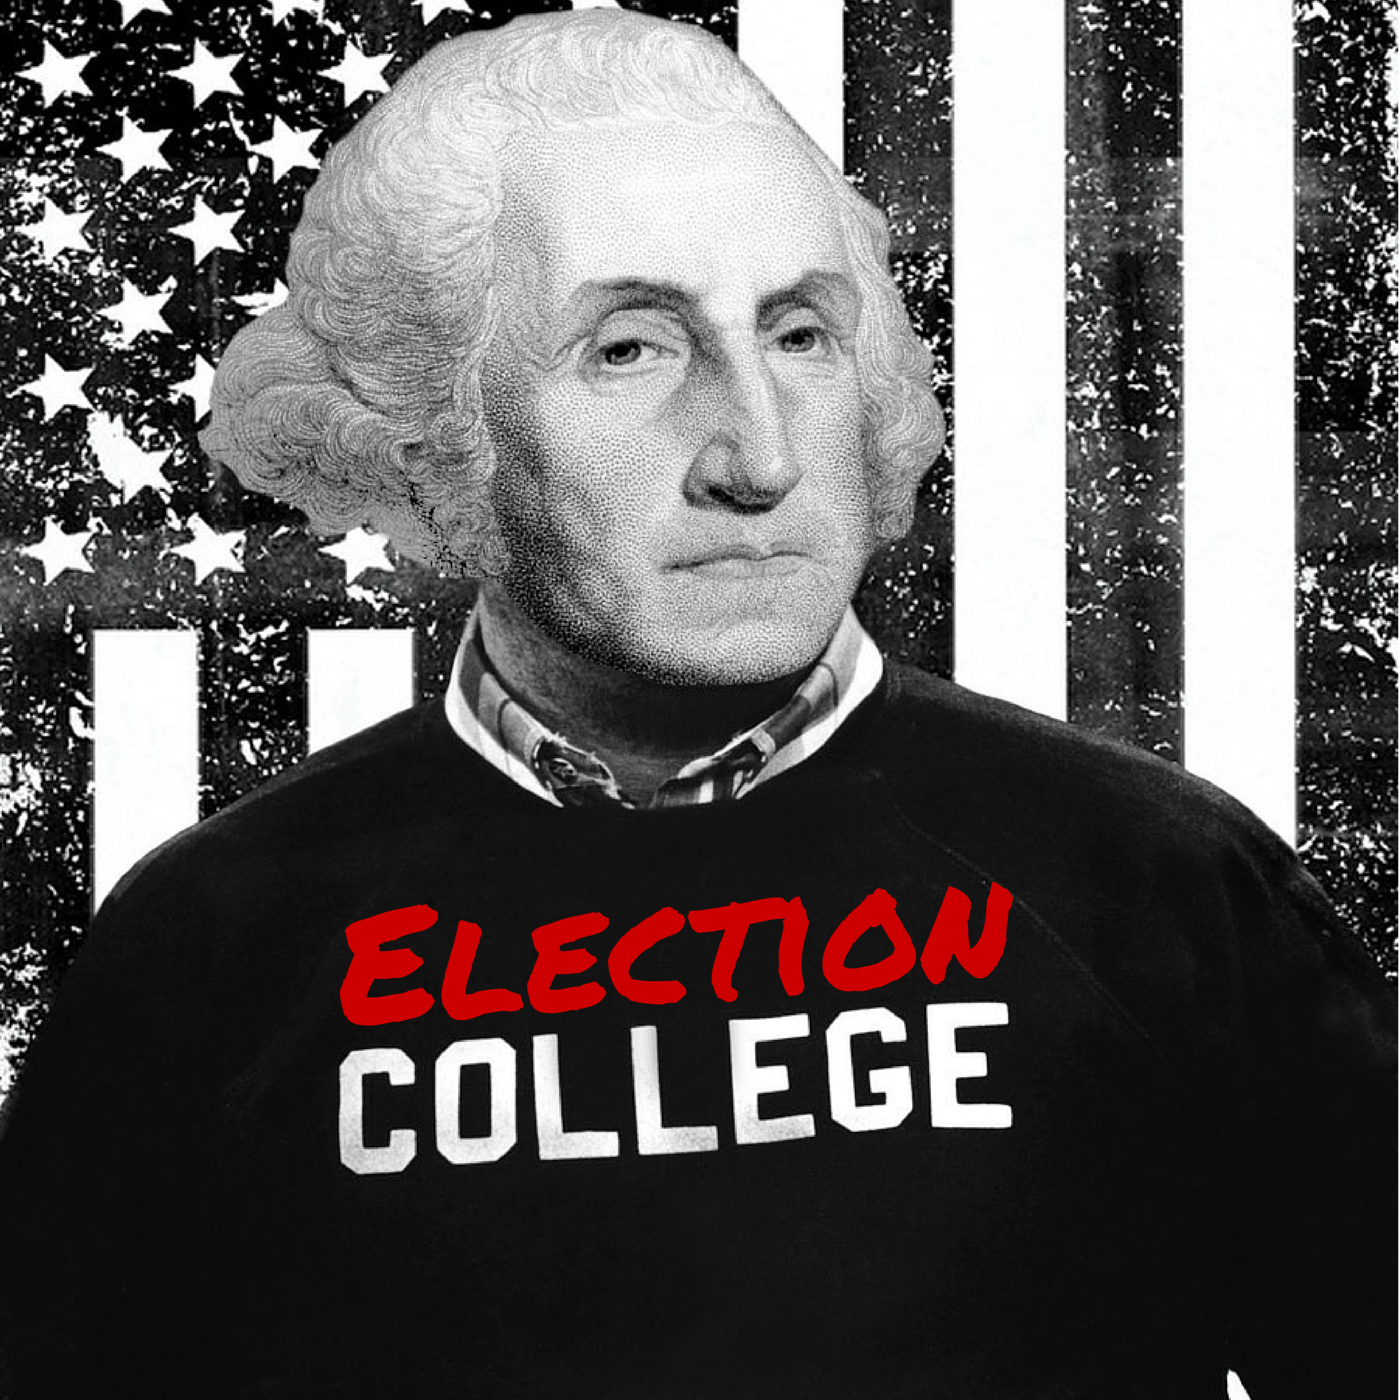 Abraham Lincoln - Part 4 | Episode #229 | Election College: United States Presidential Election History